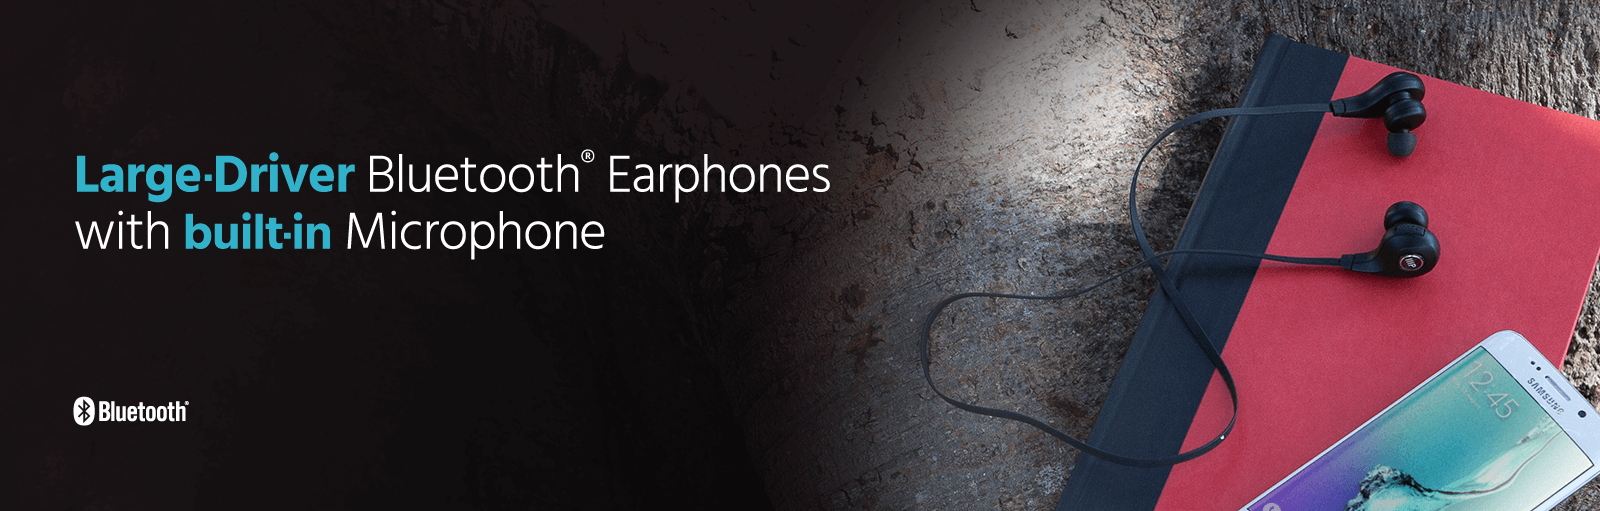 Large-Driver Bluetooth Earphones